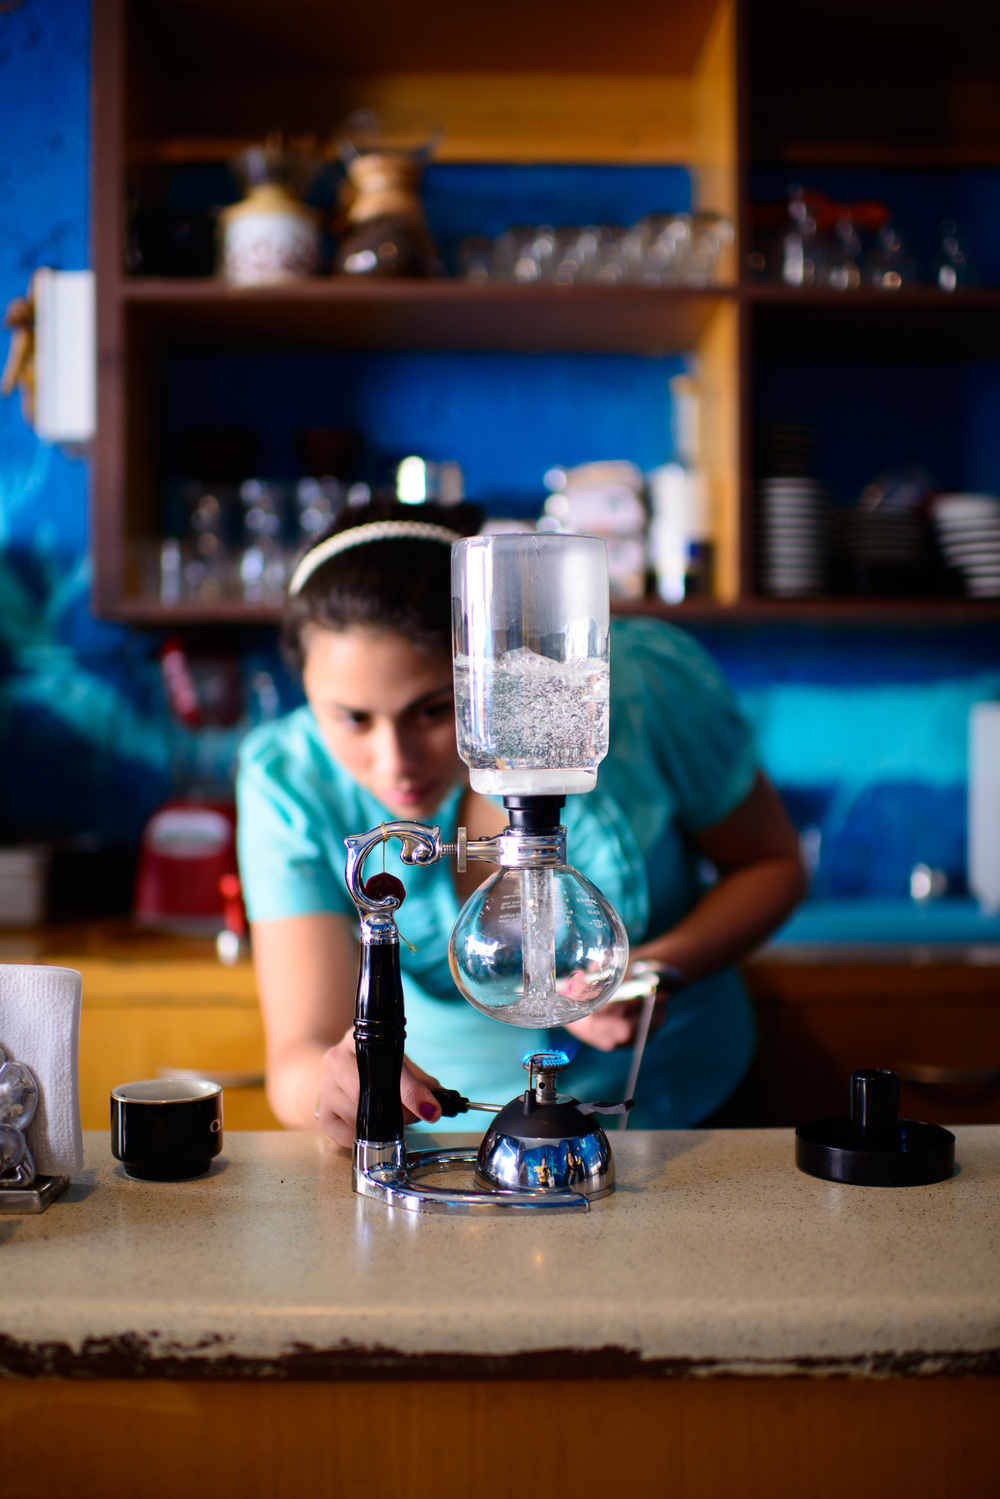 Preparing Siphon Coffee